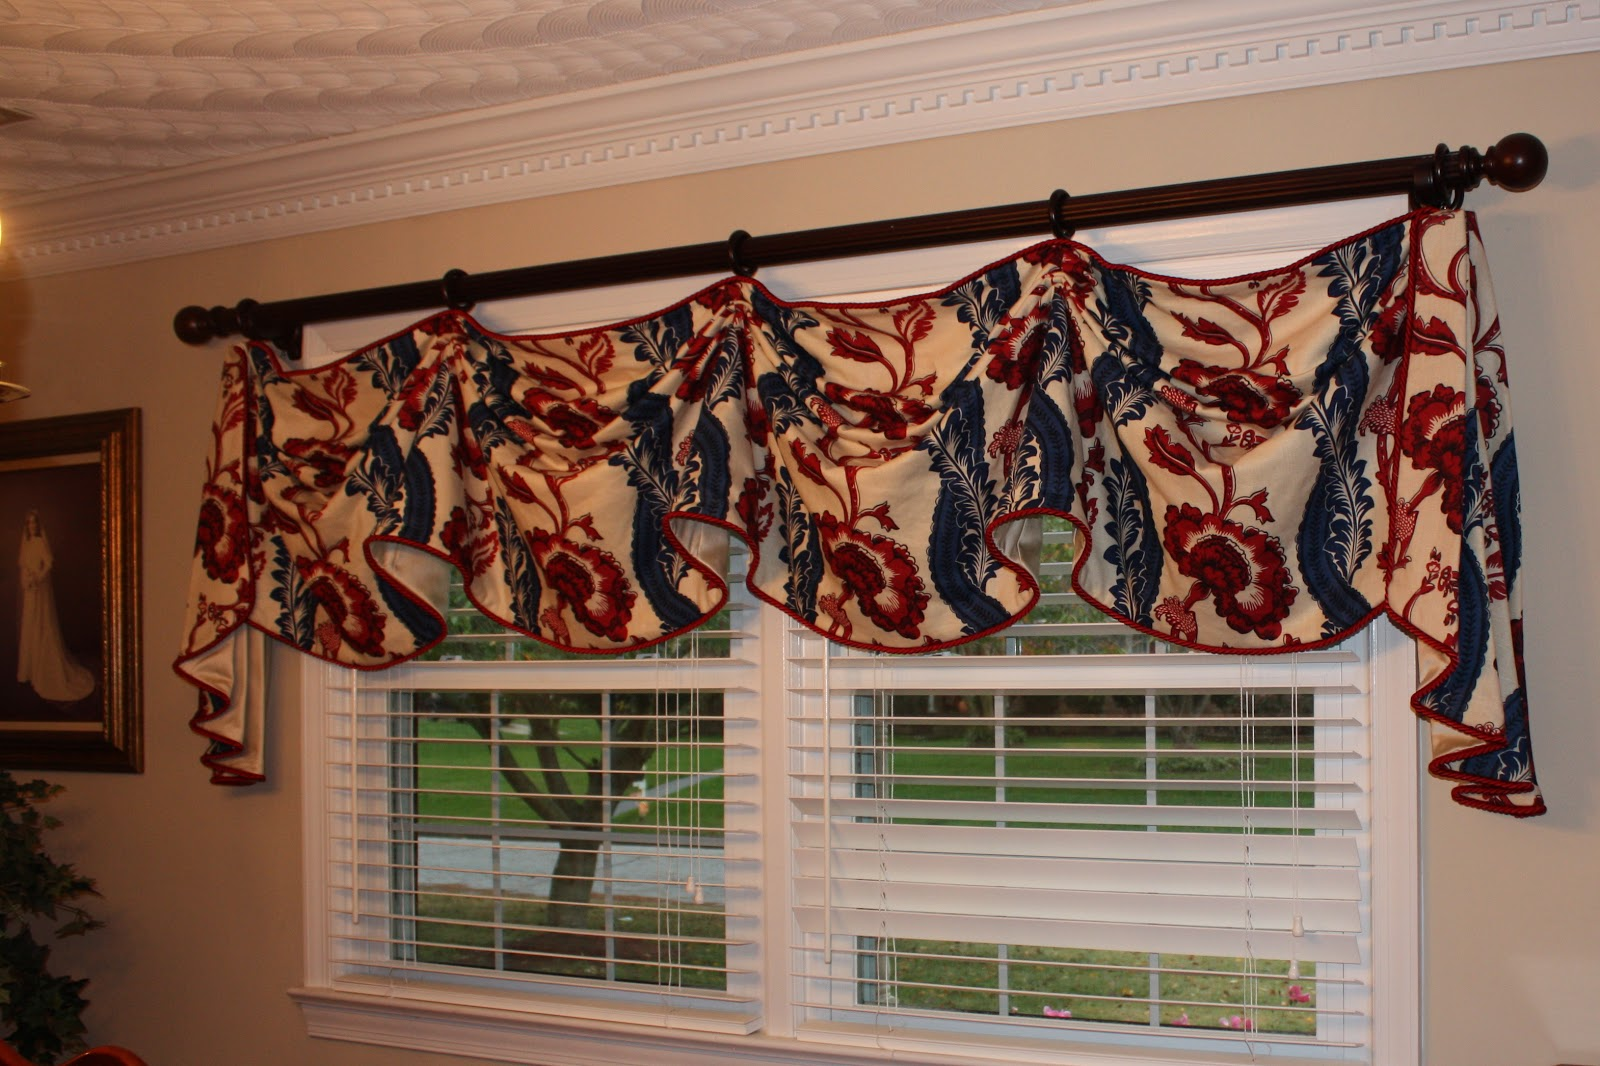 This Is The Dining Room Valance. It Is 88 Inches Long,